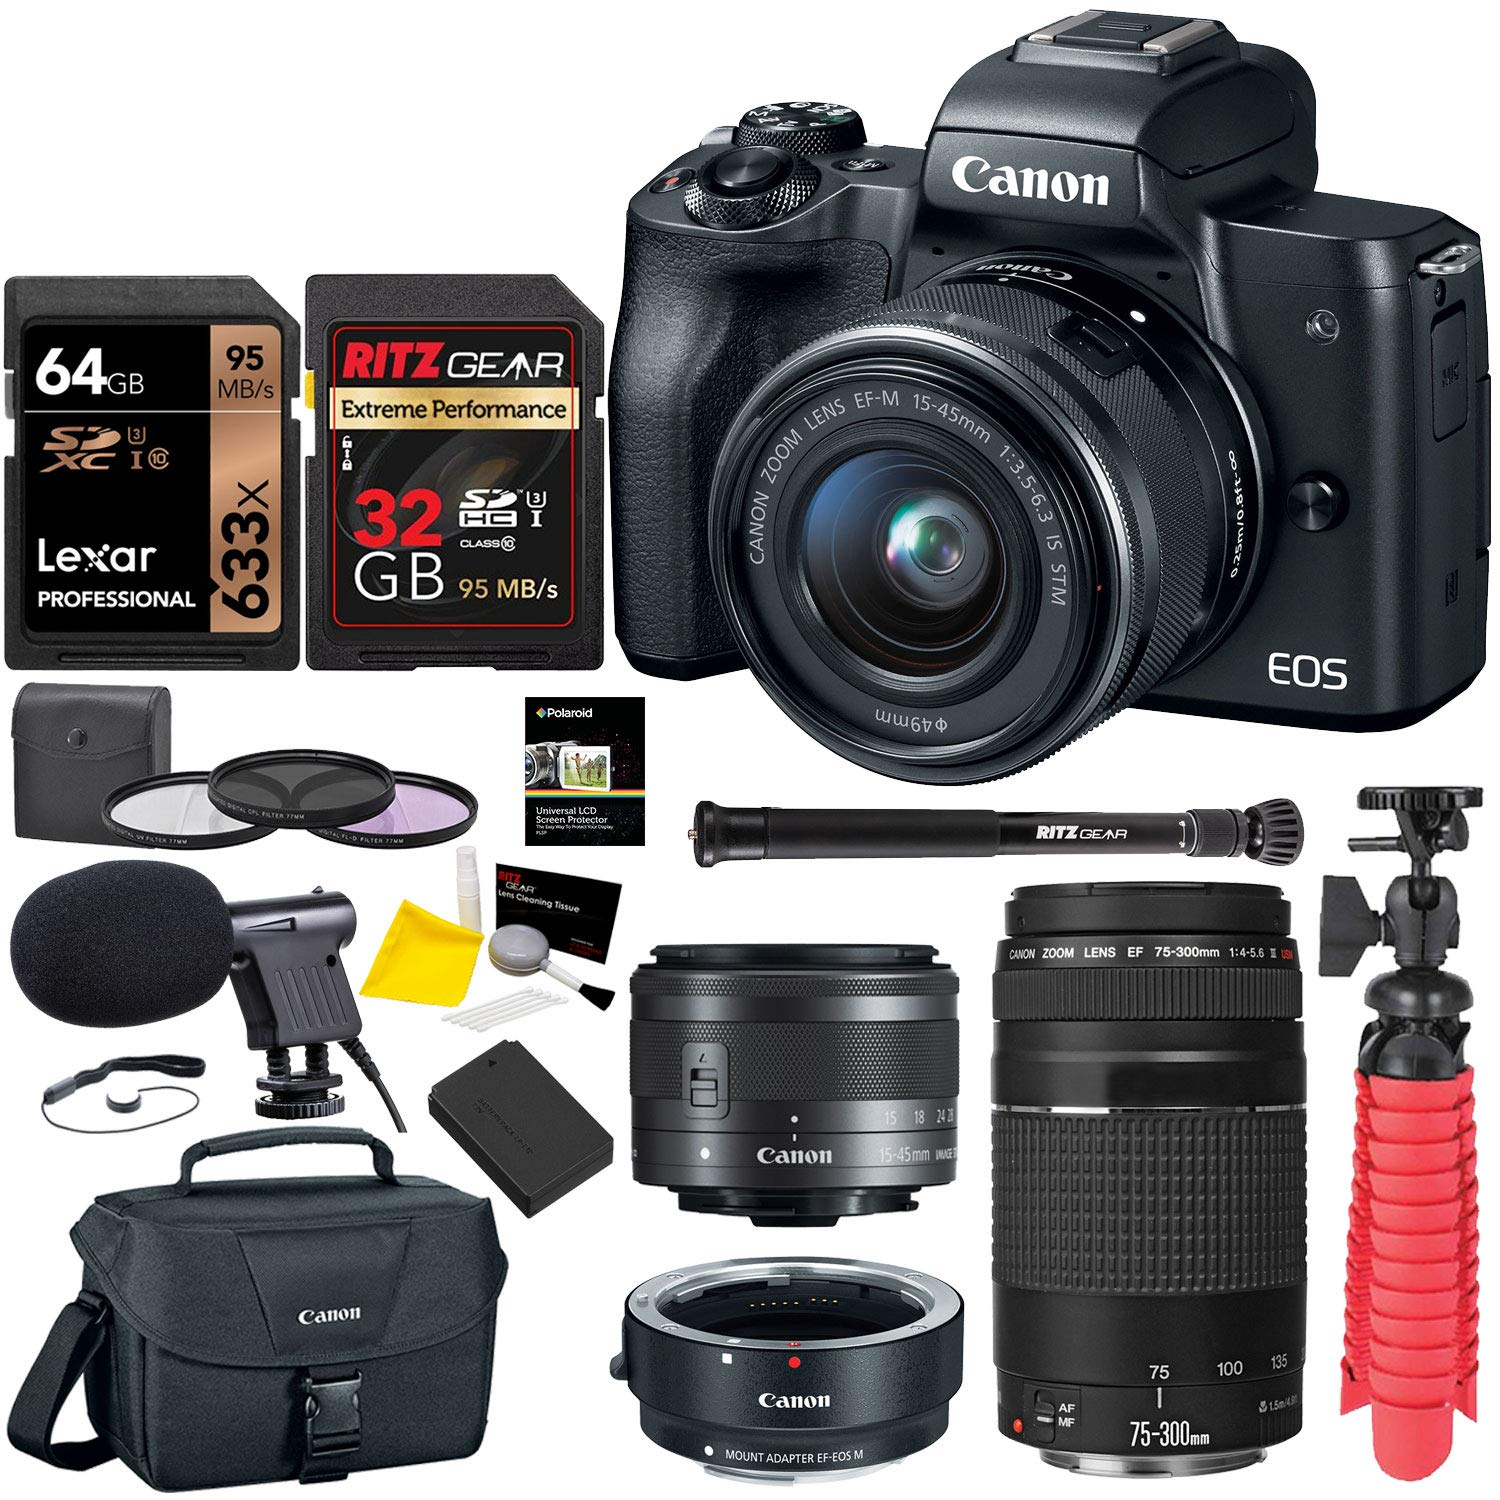 Canon EOS M50 Mirrorless Digital Camera with EF 75-300mm III, U3 Memory Card and Lens Bundle by Canon